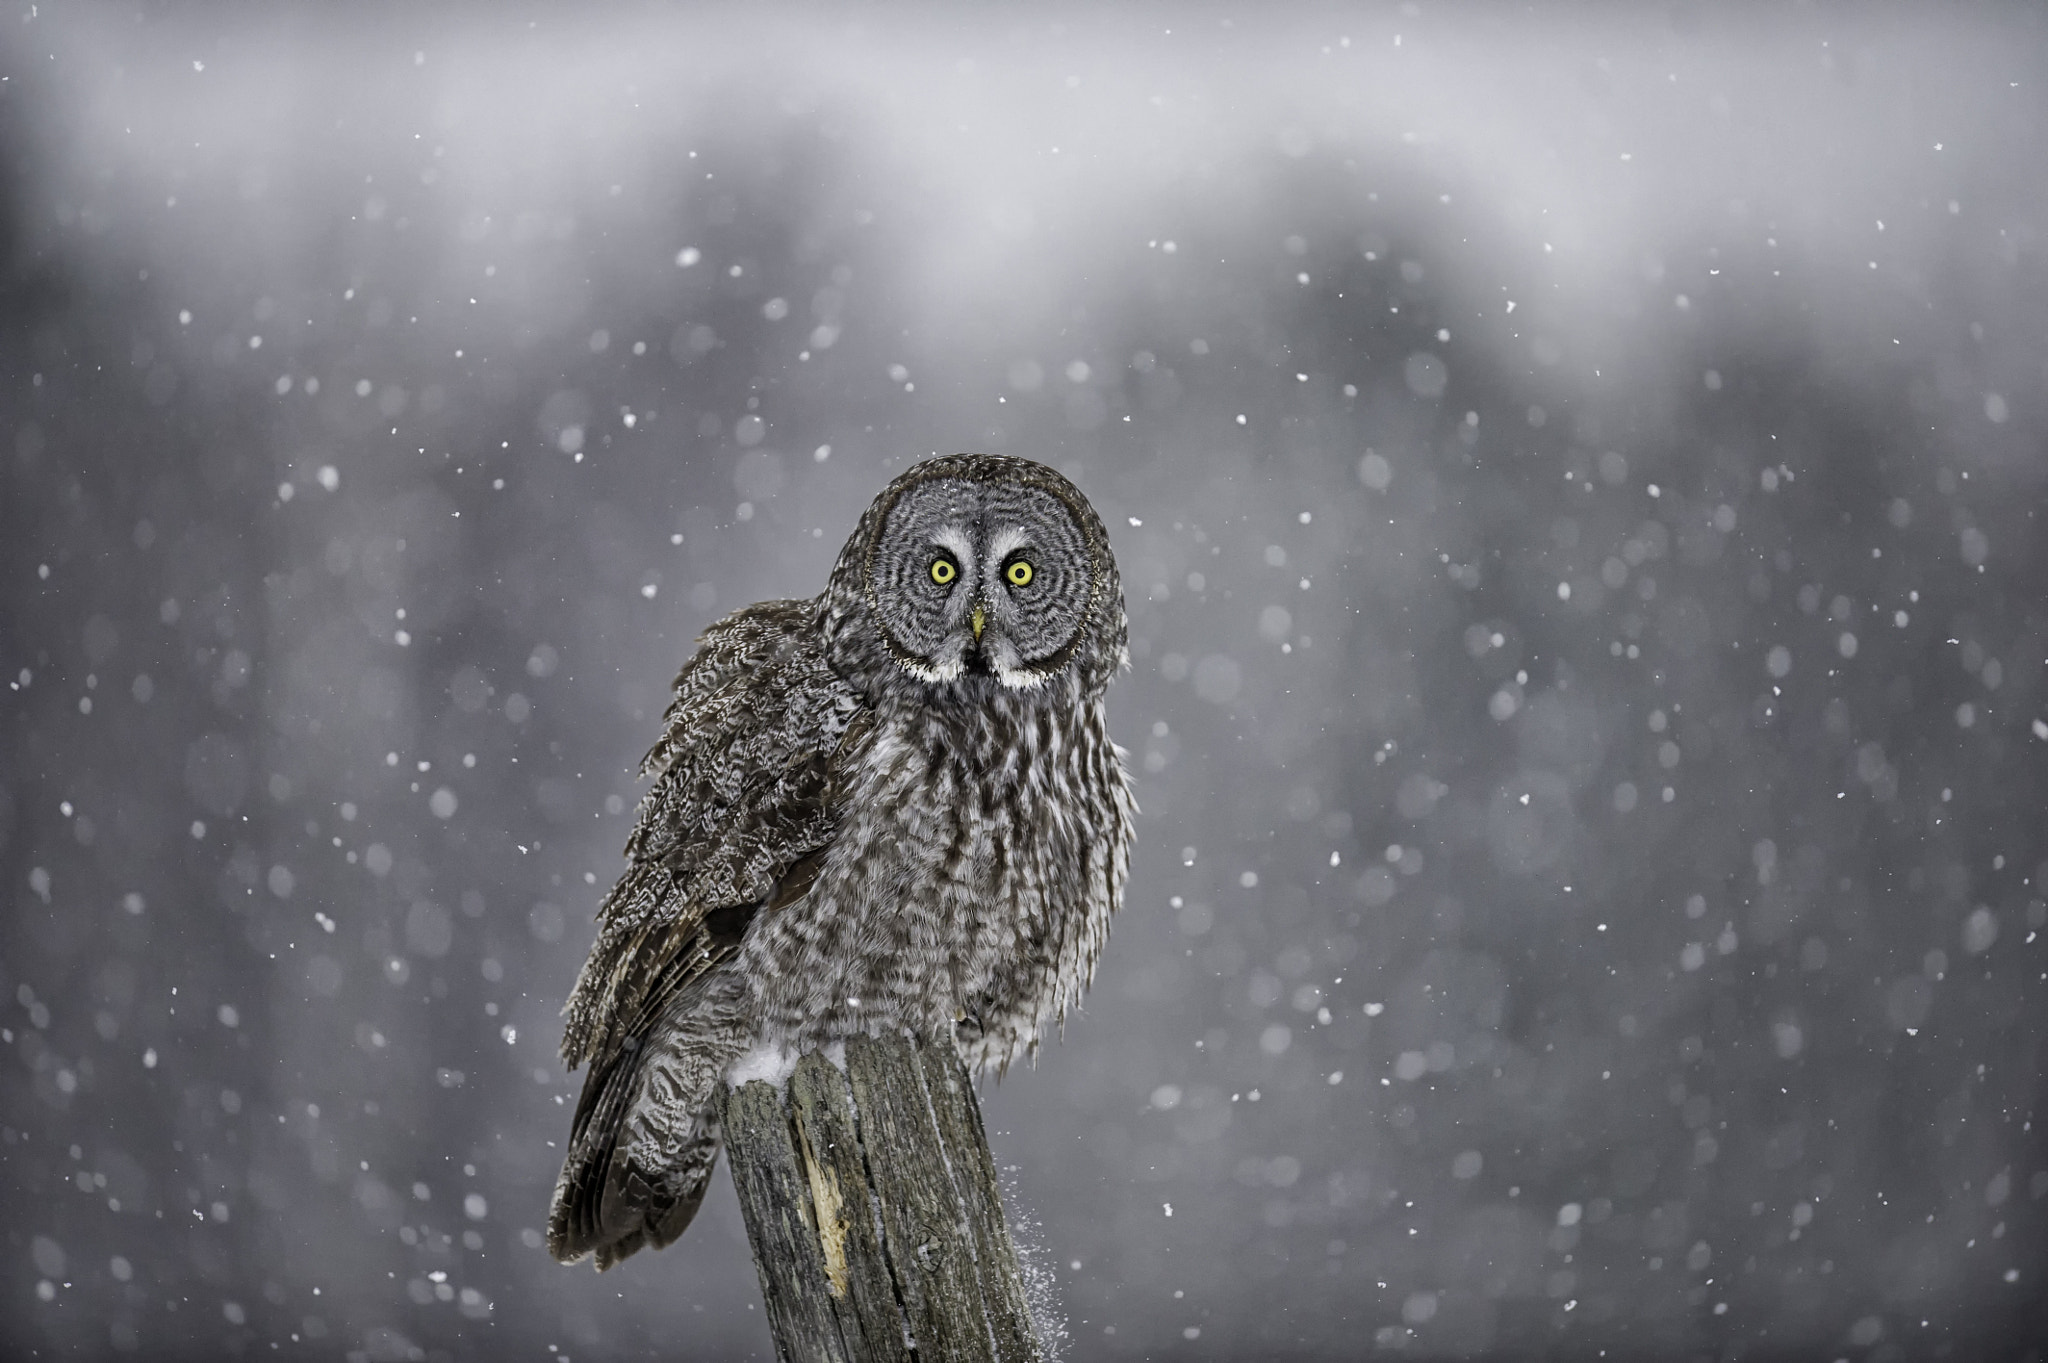 Photograph In the Snow by Daniel Parent on 500px